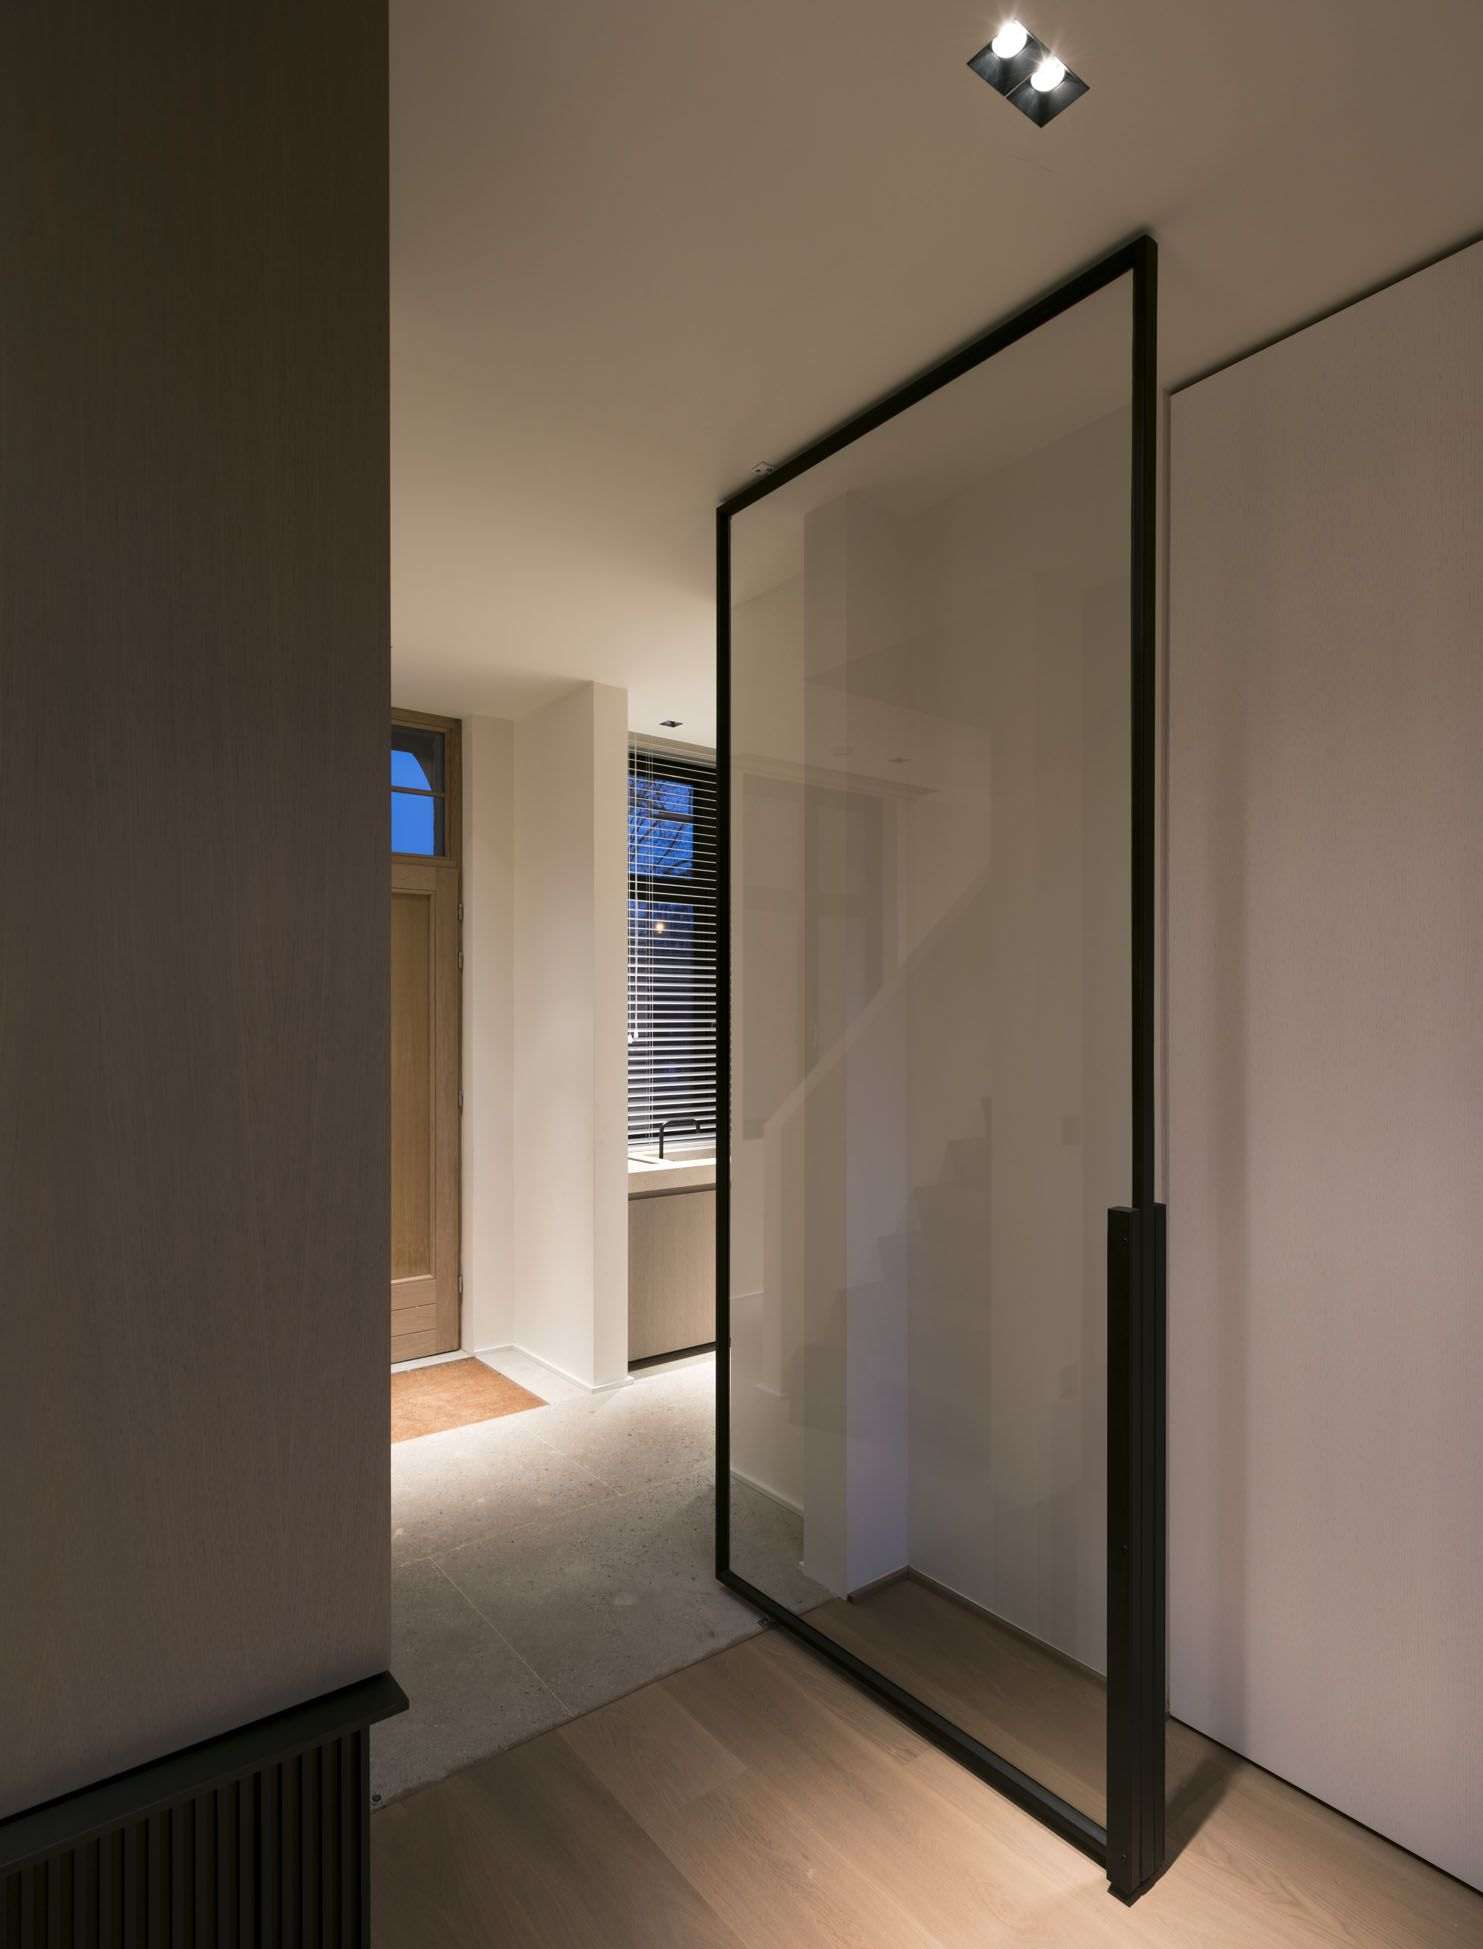 Exciting Modern Front Doors Ideas For Modern Home Design Recessed Lighting And Modern Front: Kreon Lighting Minimalist Modern LED Design Architecture Glass Door Steel Black Recessed